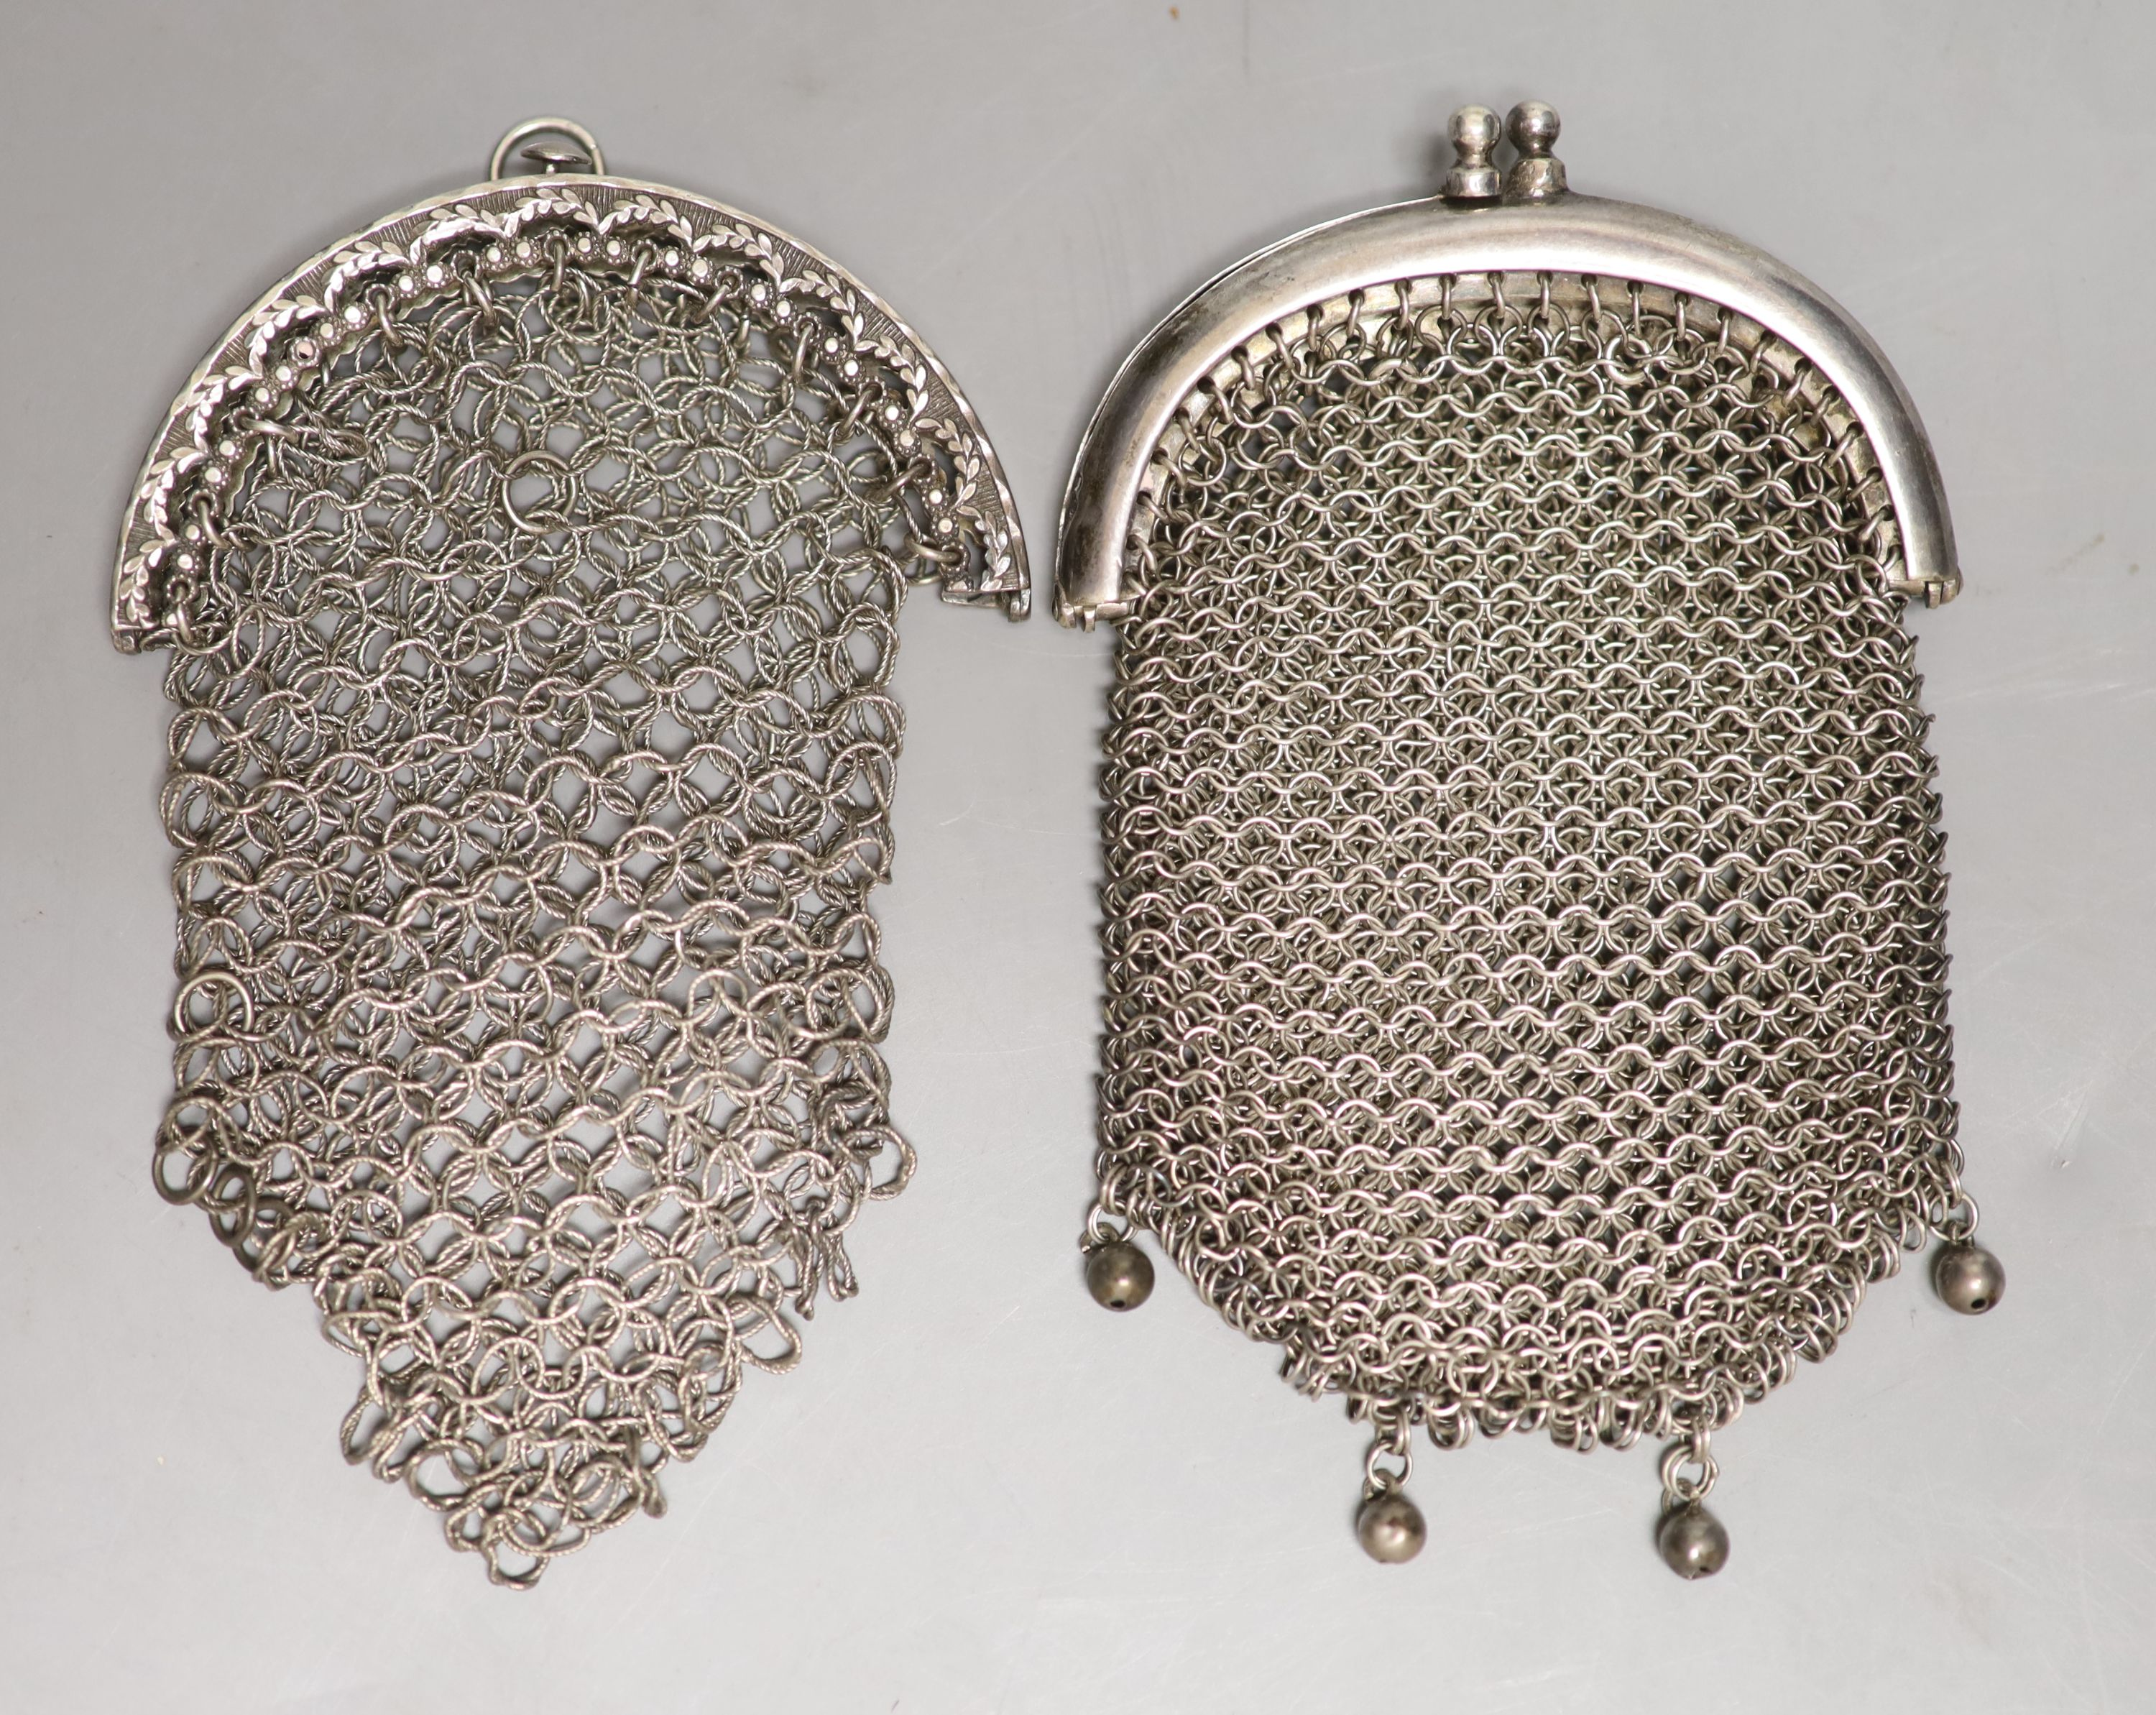 A George III silver chain link purse, John Shaw, Birmingham, 1810, 10cm and one other white metal